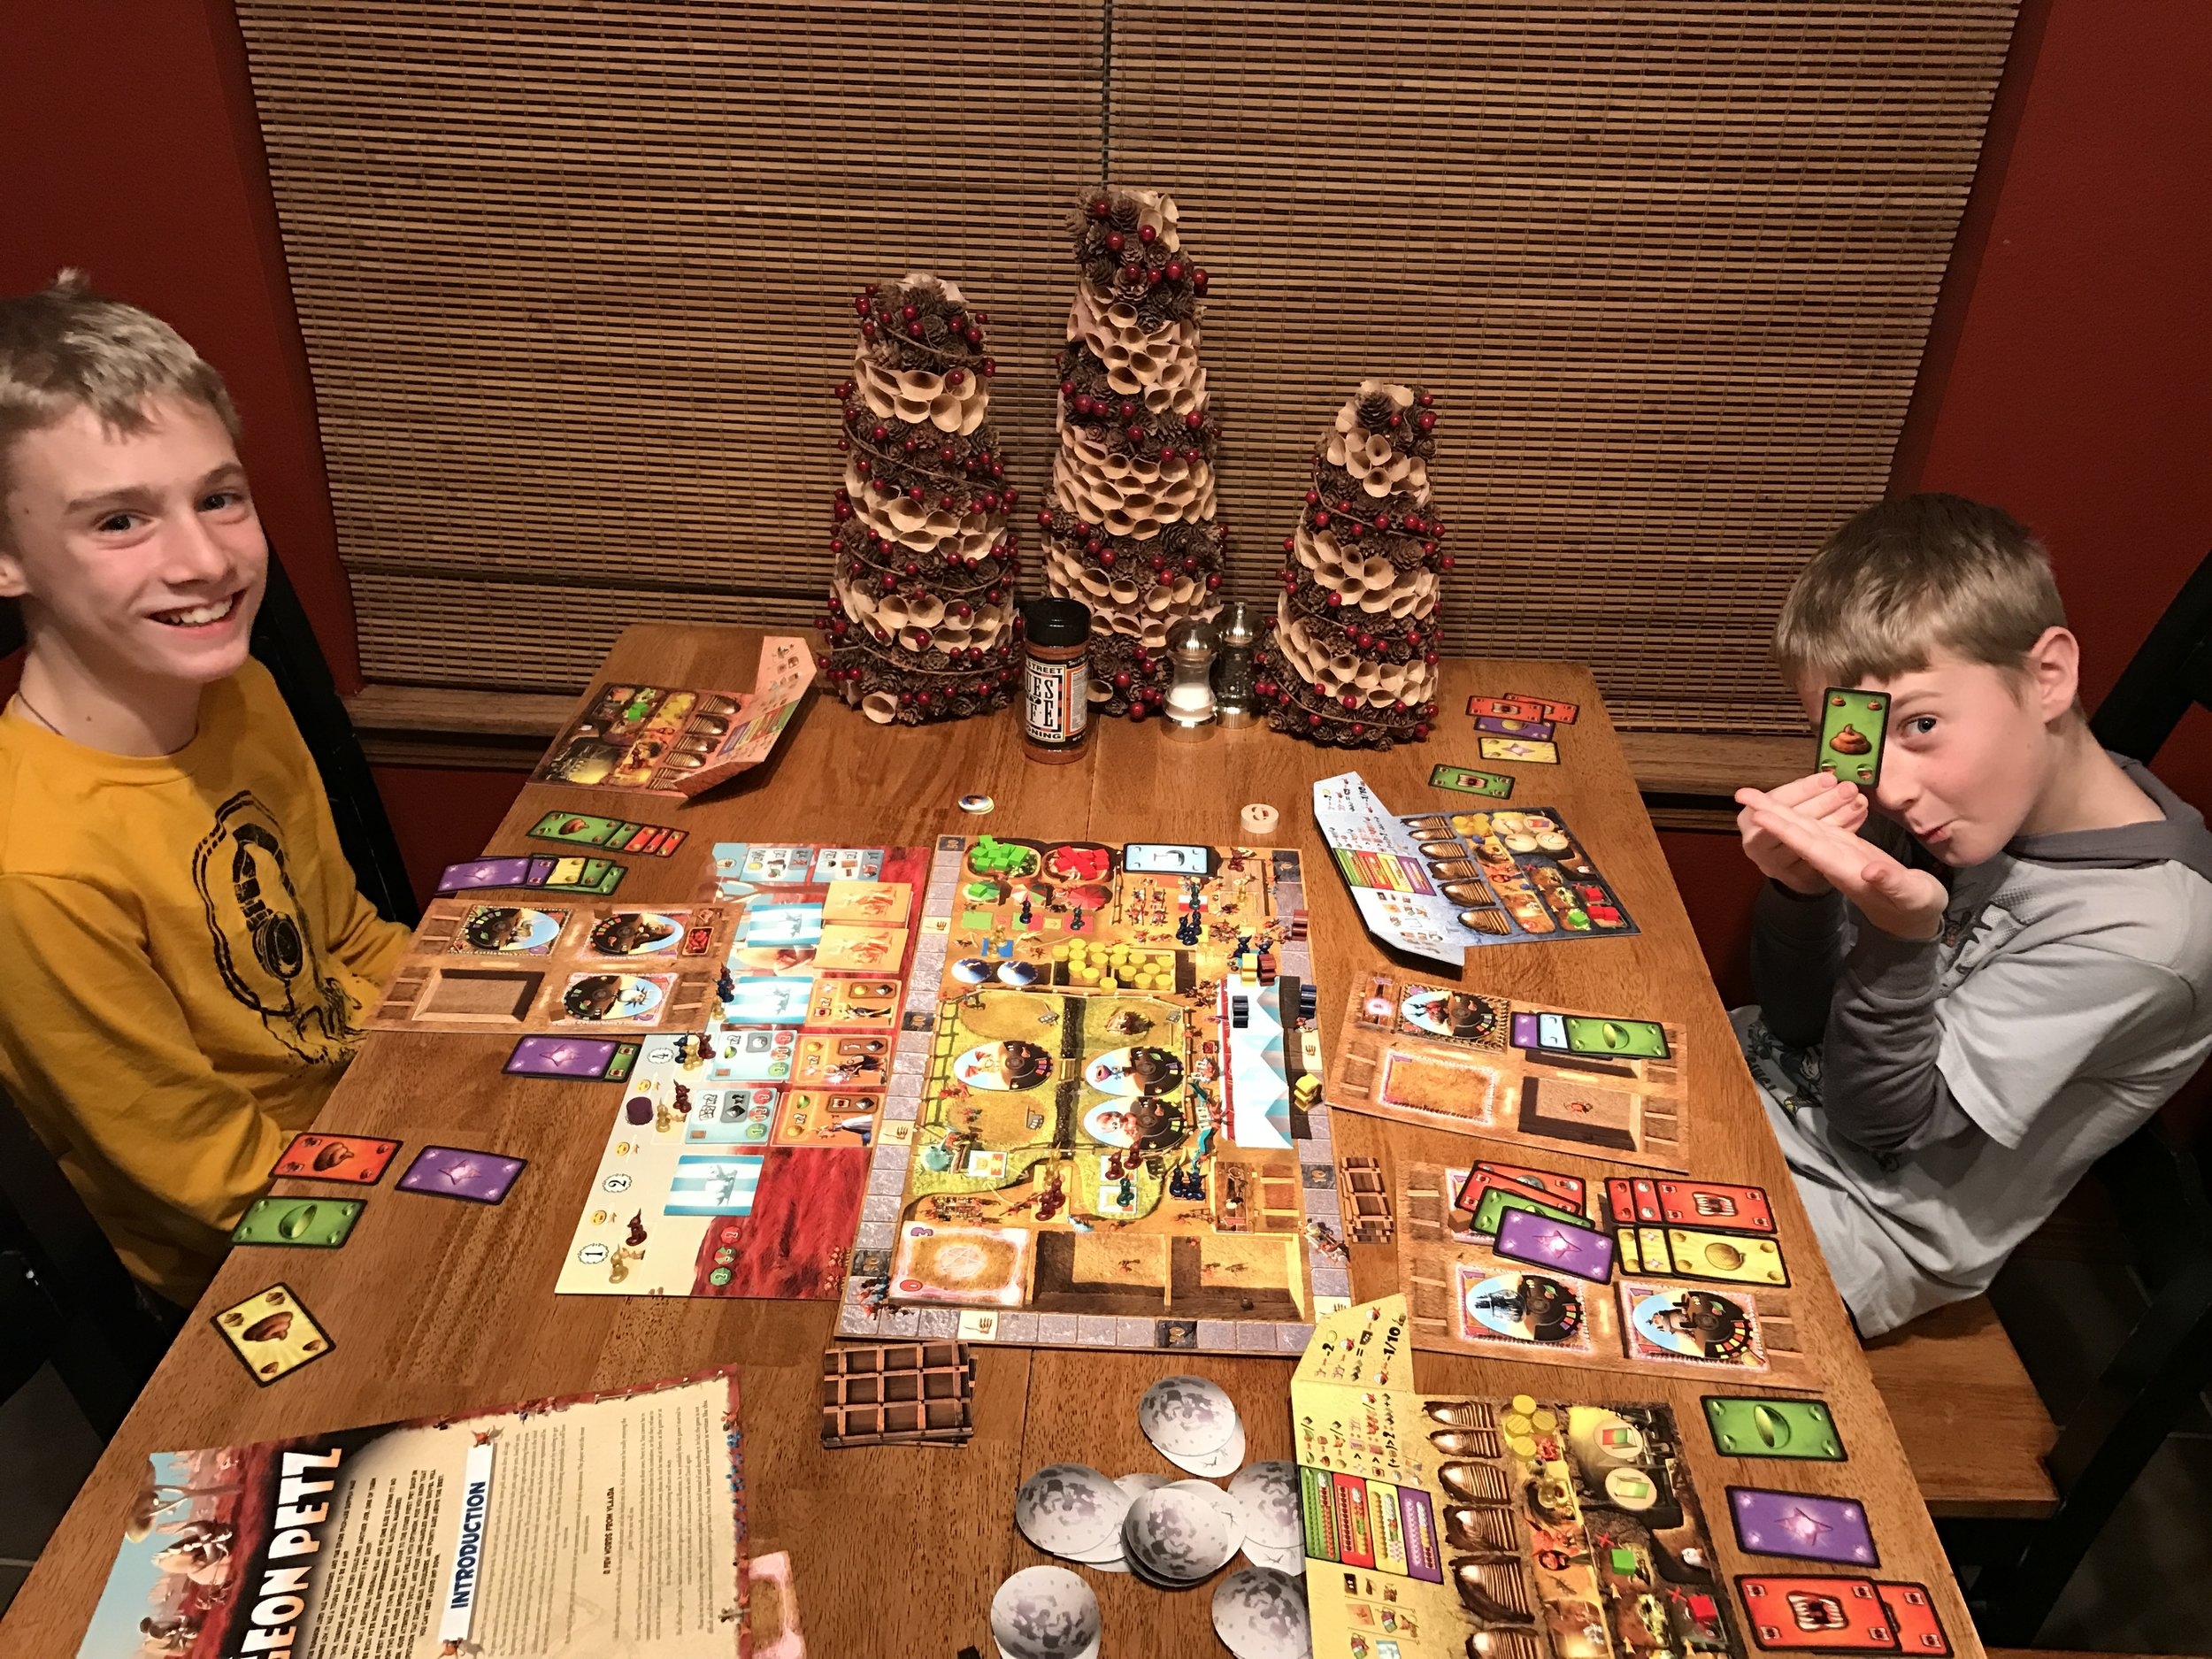 My kids LOVE this game. And Son the Younger is showing his favorite part: The Poop!